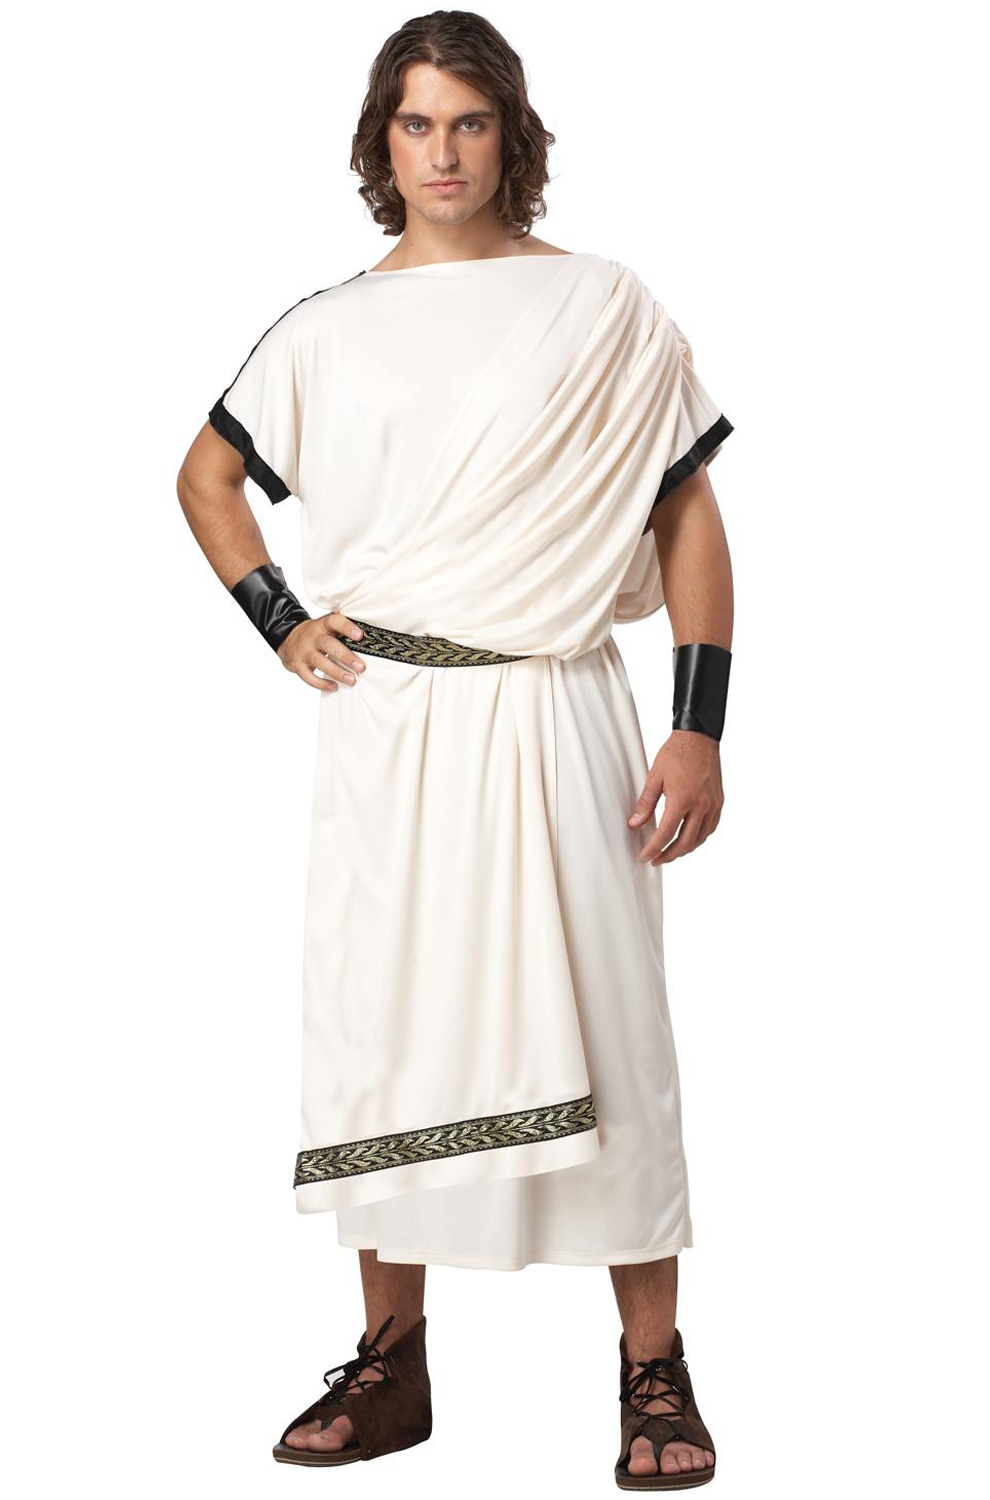 How To Make A Guy Toga Men's Delux...